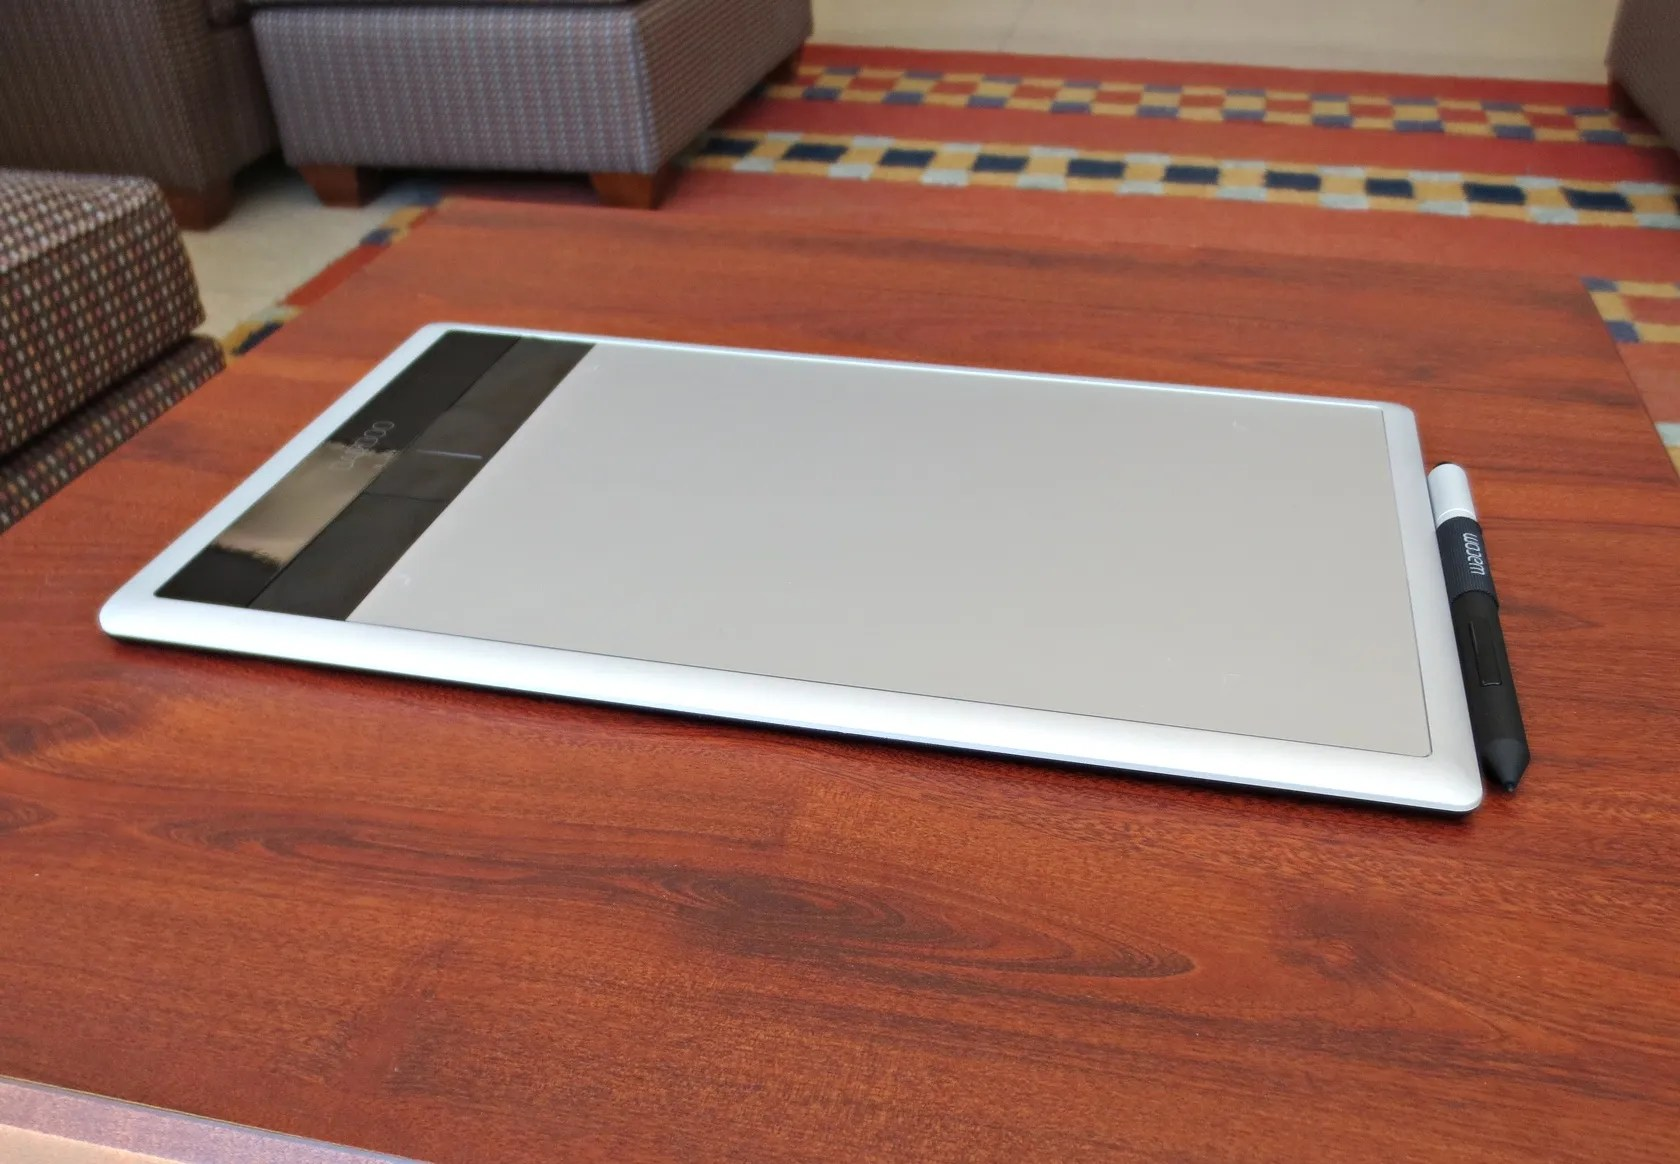 Bamboo Tablet Wacom Bamboo Create Pen And Touch Tablet Review And Giveaway